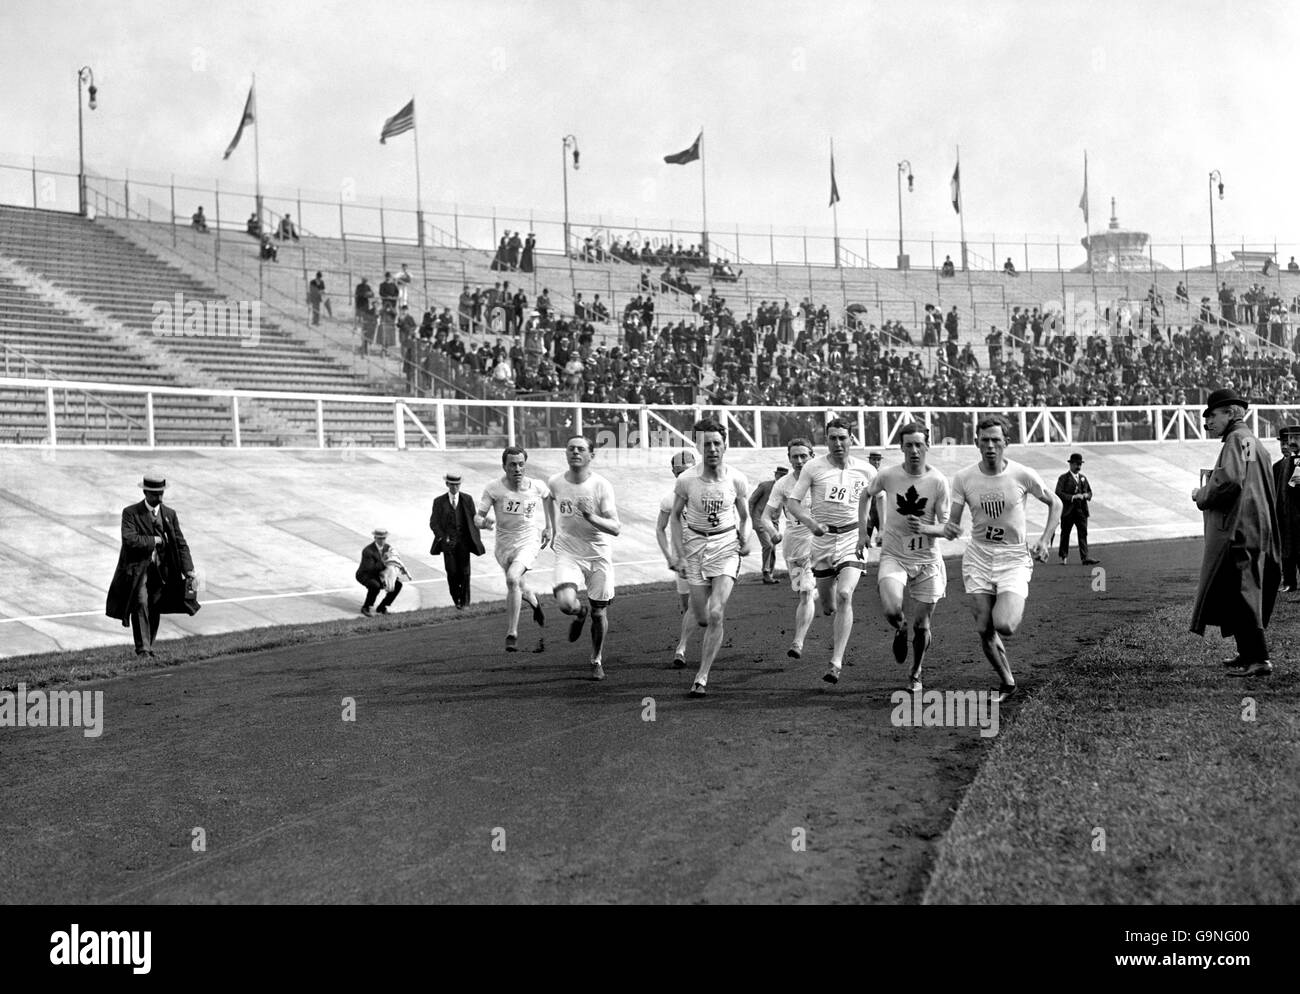 Athletics - London Olympic Games 1908 - 1500m - Final - White City - Stock Image